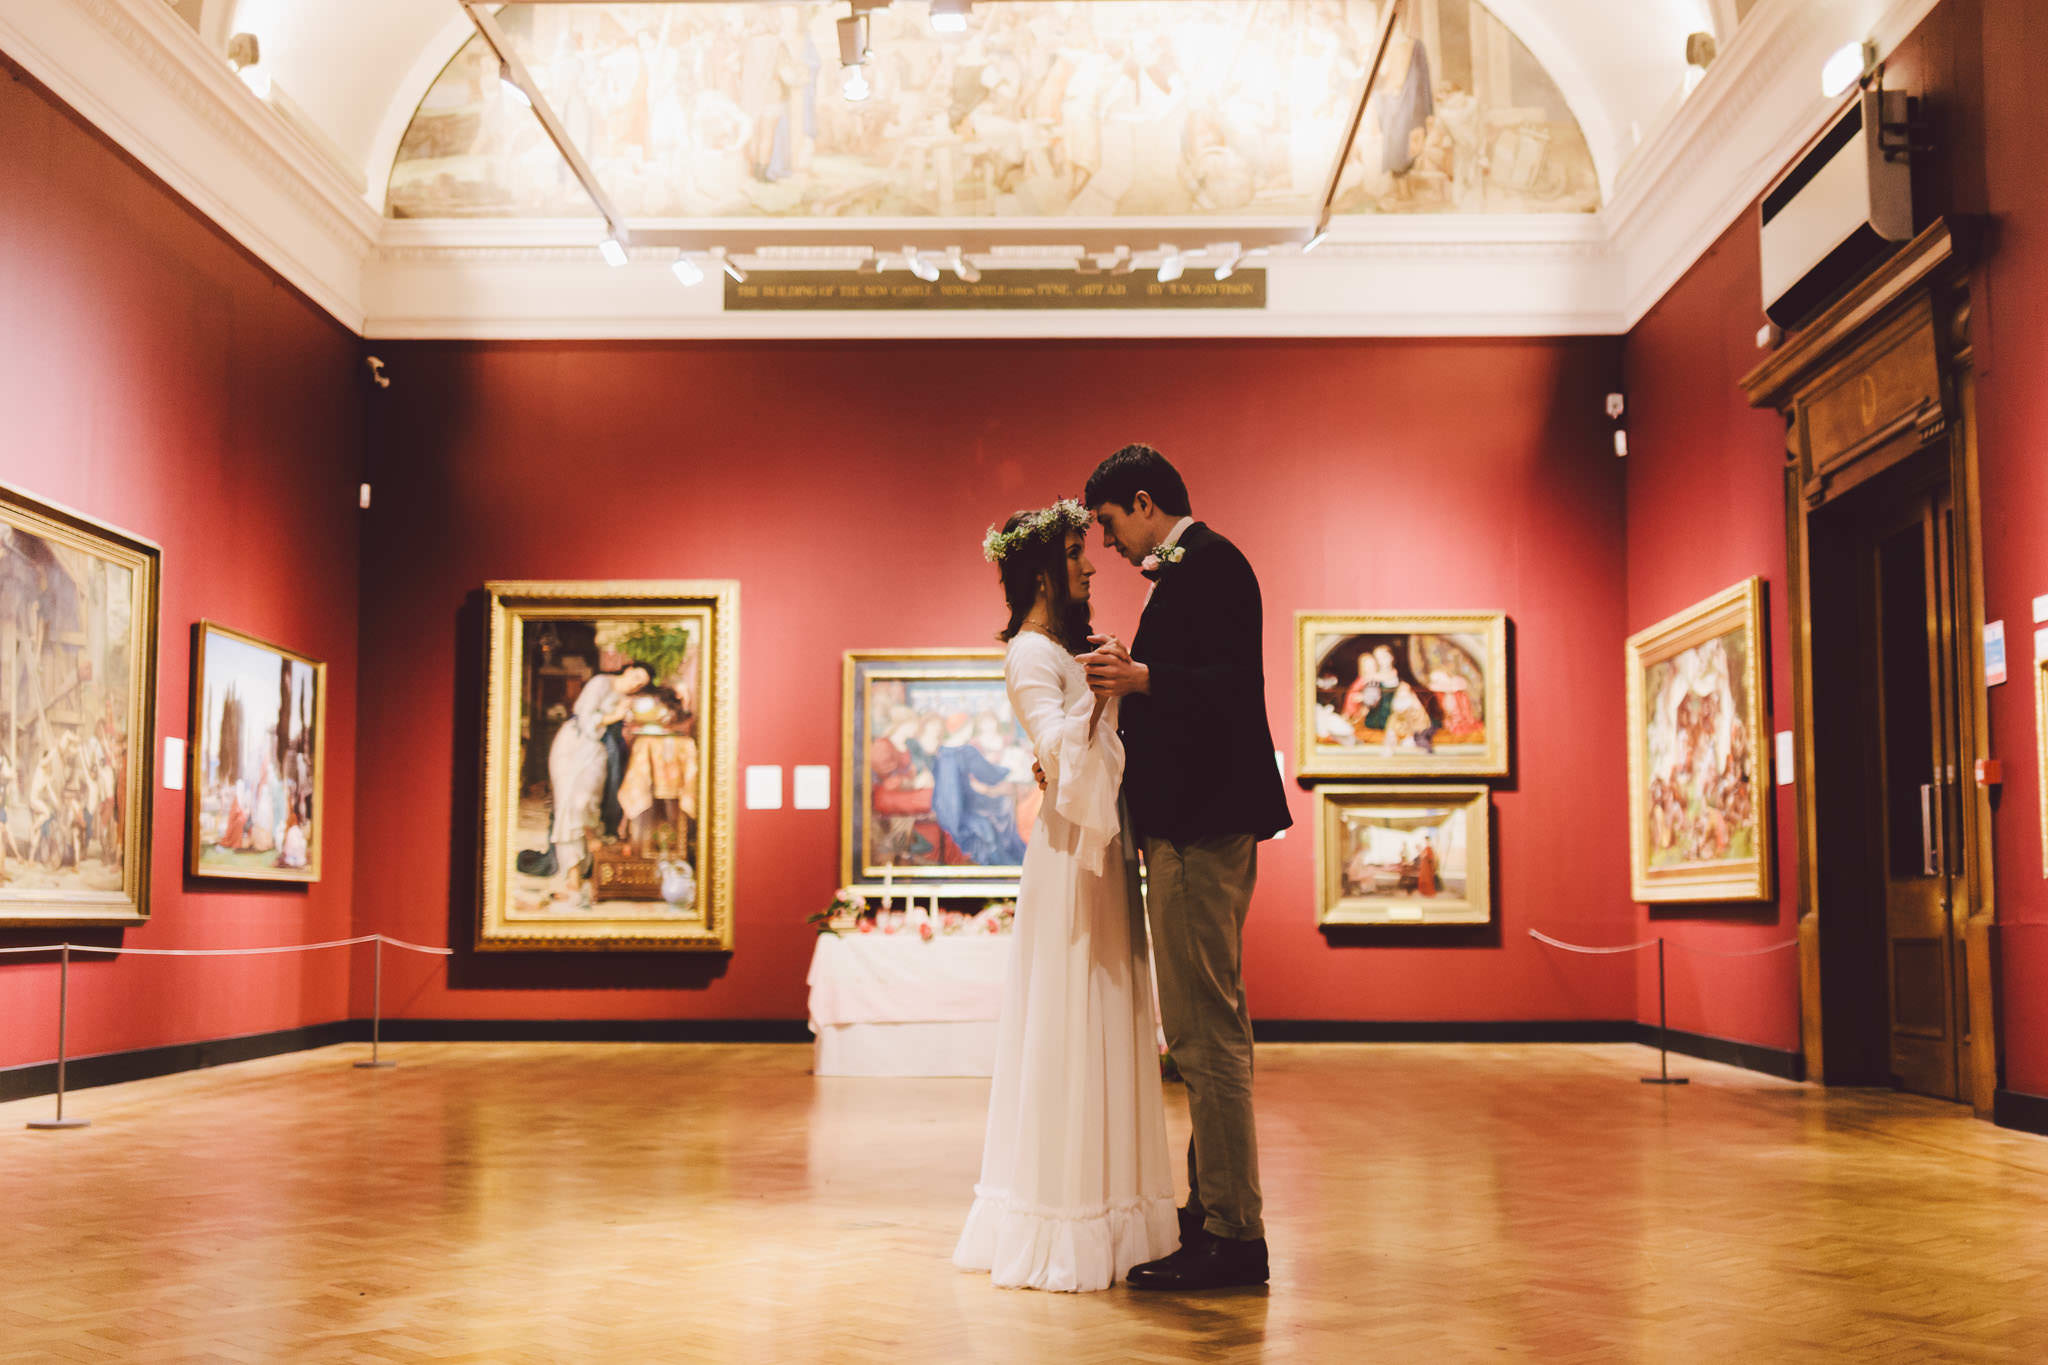 Bride and groom dance in Laing Art Gallery by Barry Forshaw